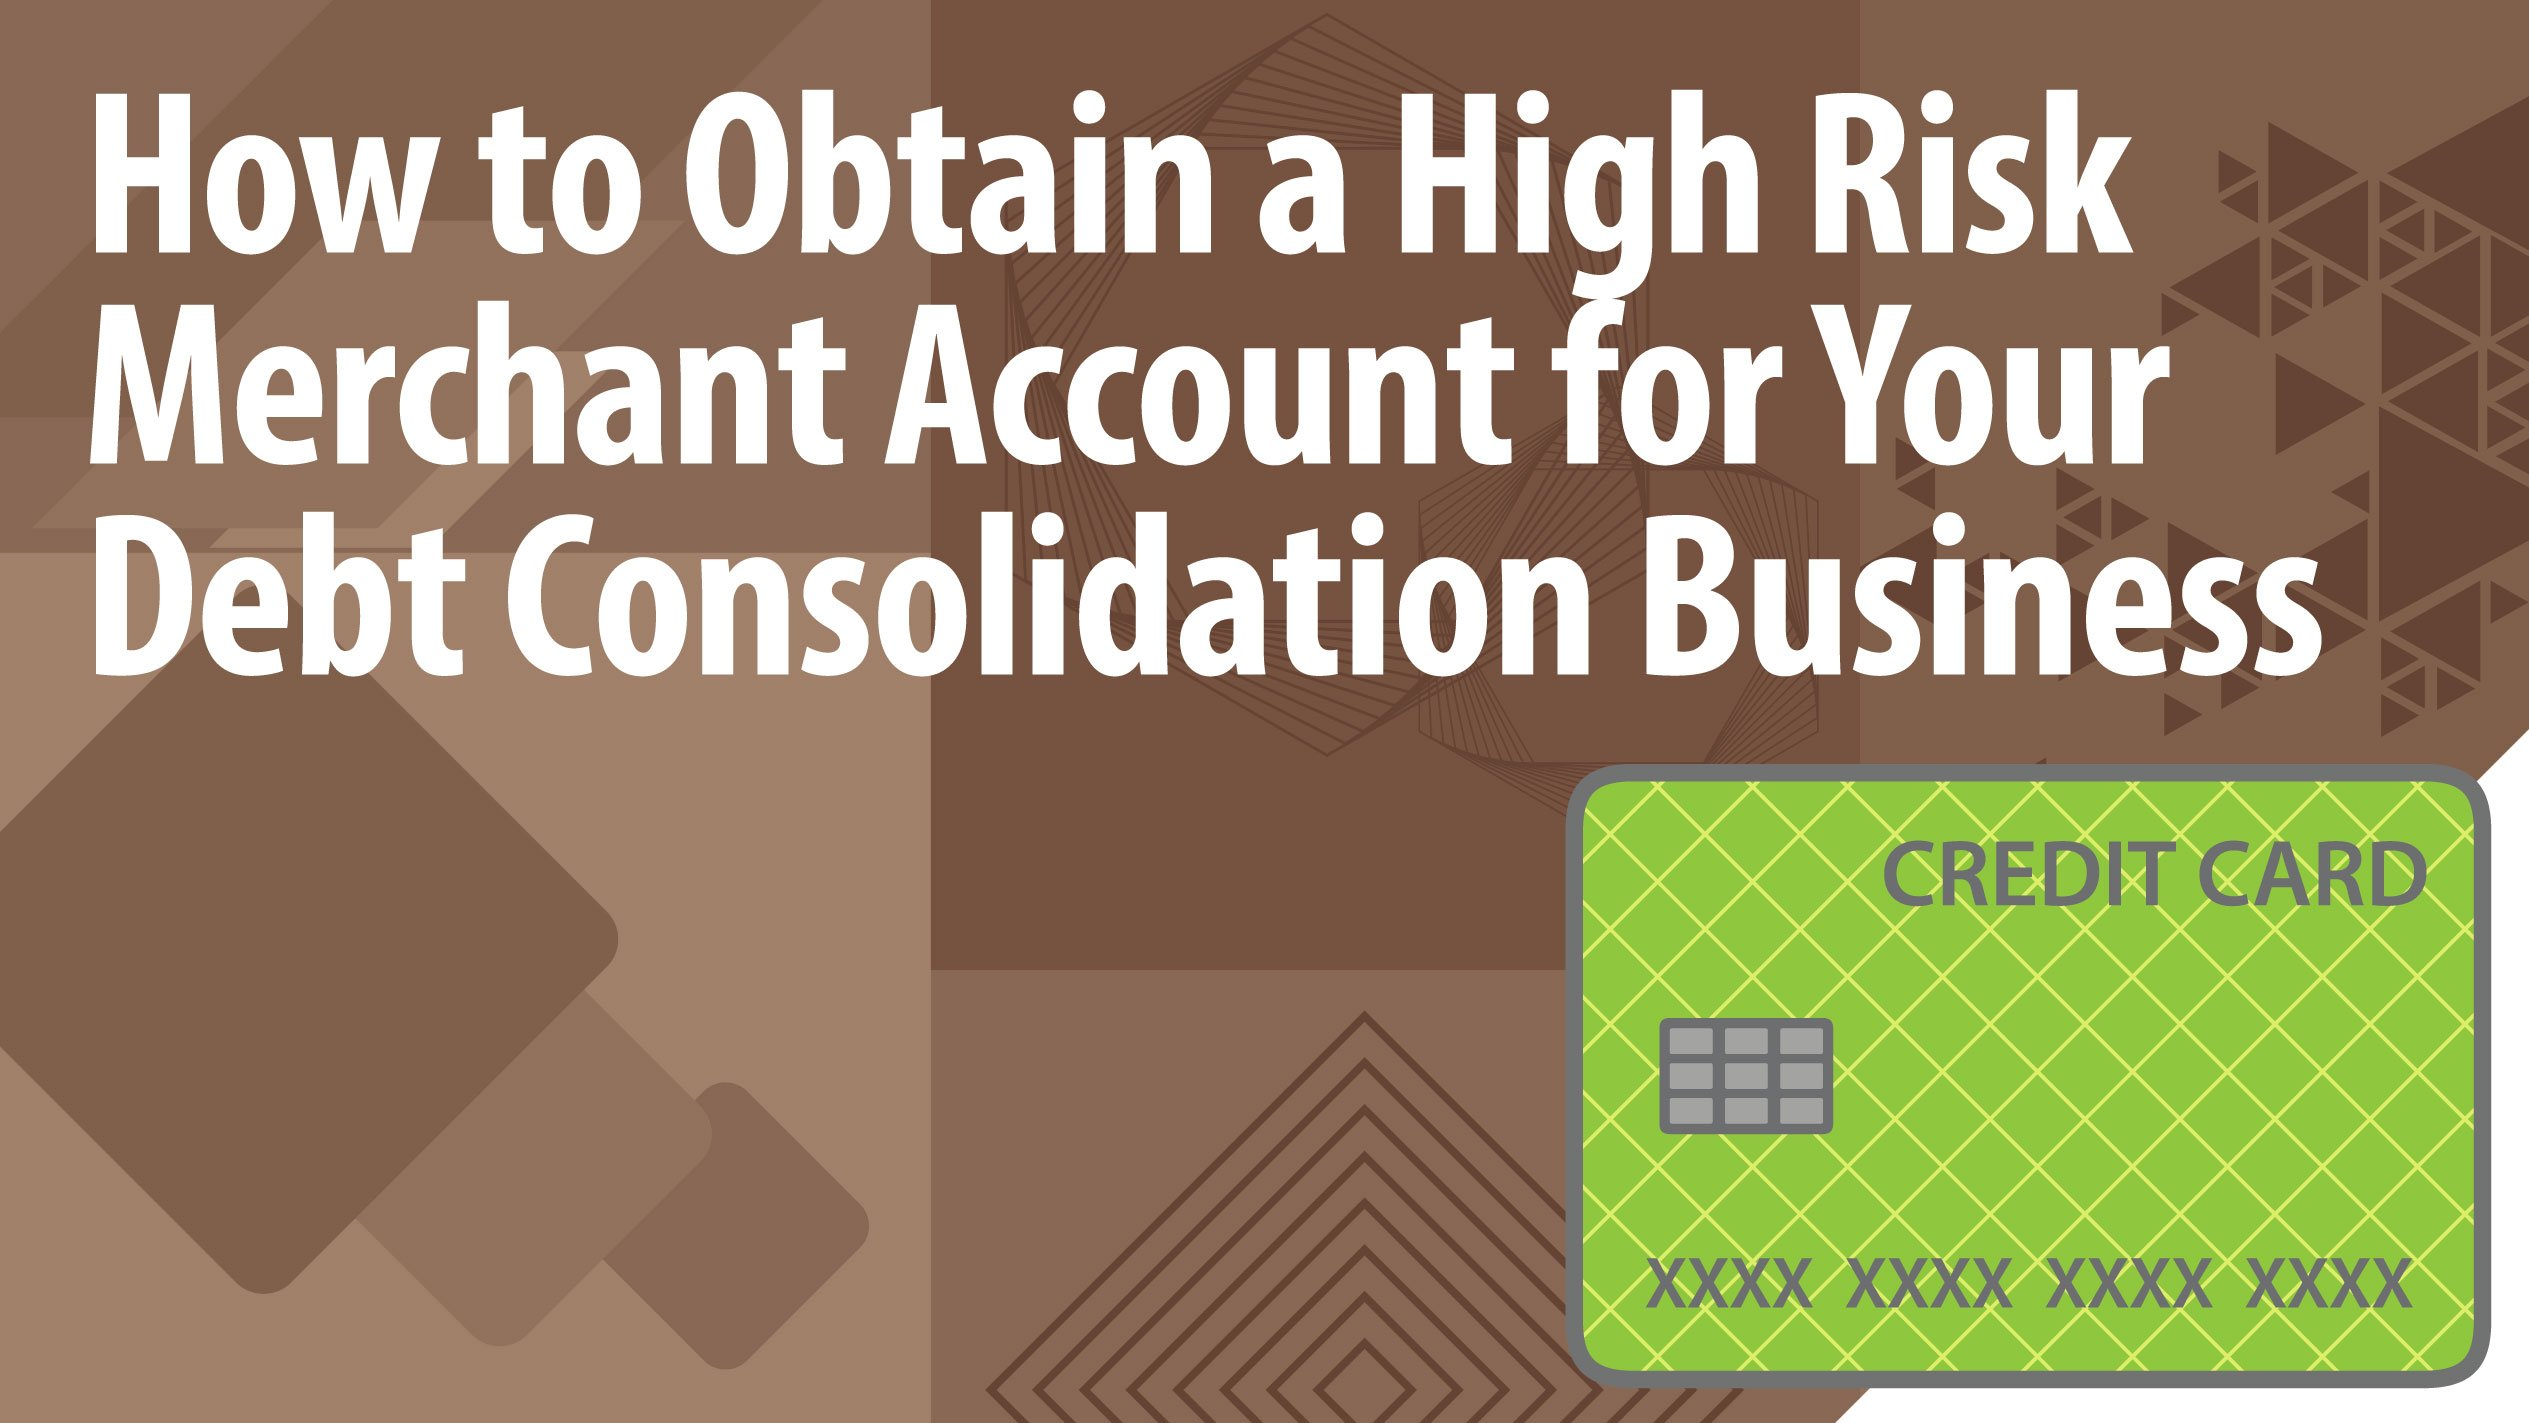 How to Obtain a High Risk Merchant Account for Your Debt Consolidation Business